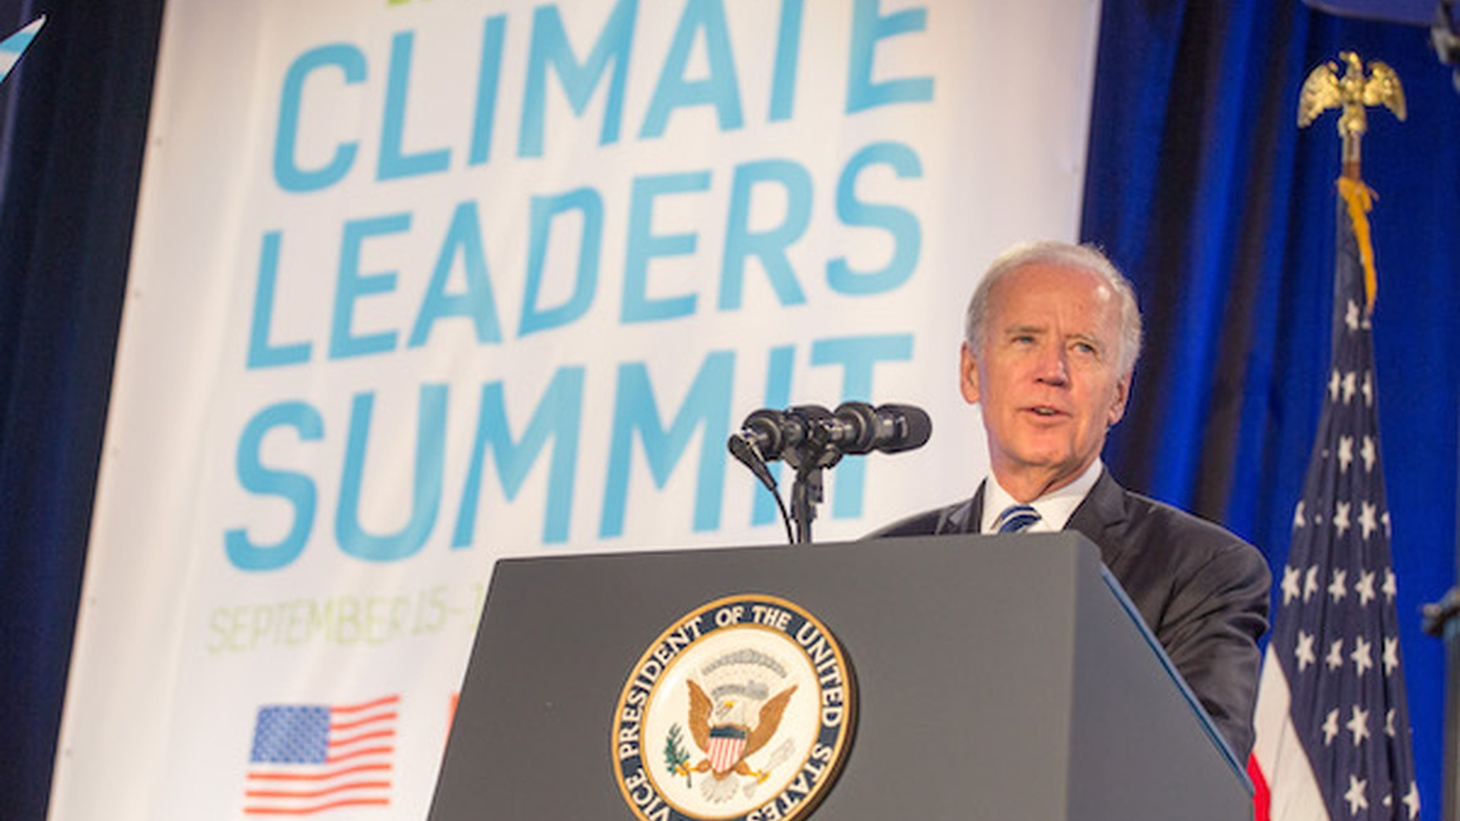 Joe Biden speaking at Climate Leaders Summit.